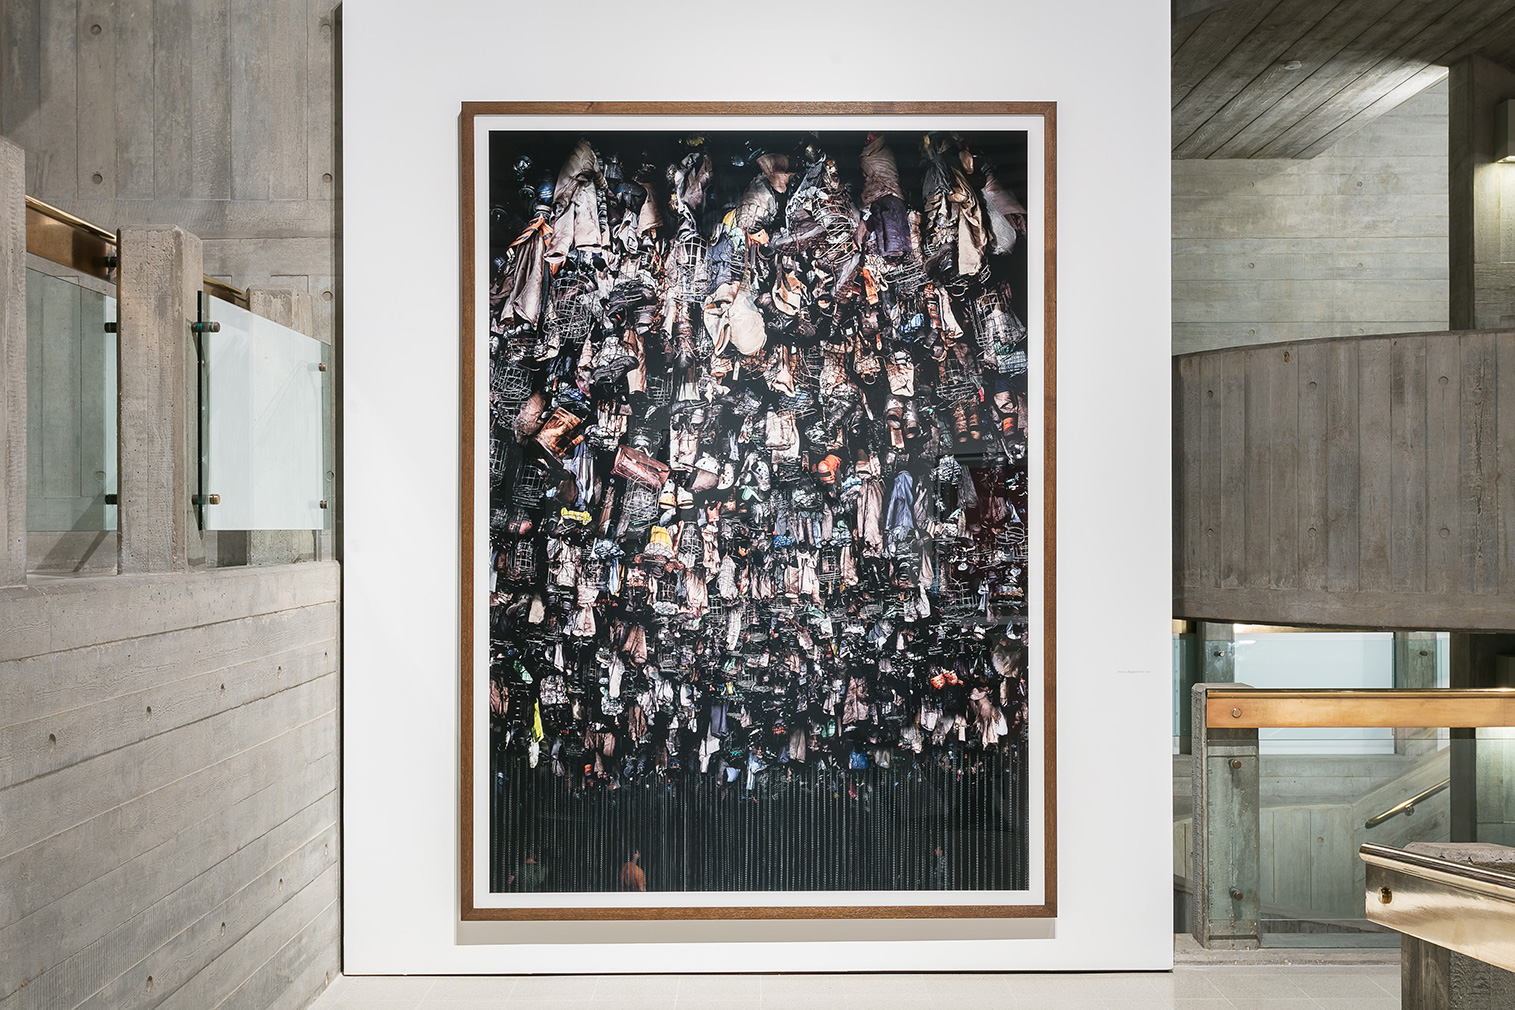 Installation view of the Andreas Gursky exhibition at Hayward Gallery